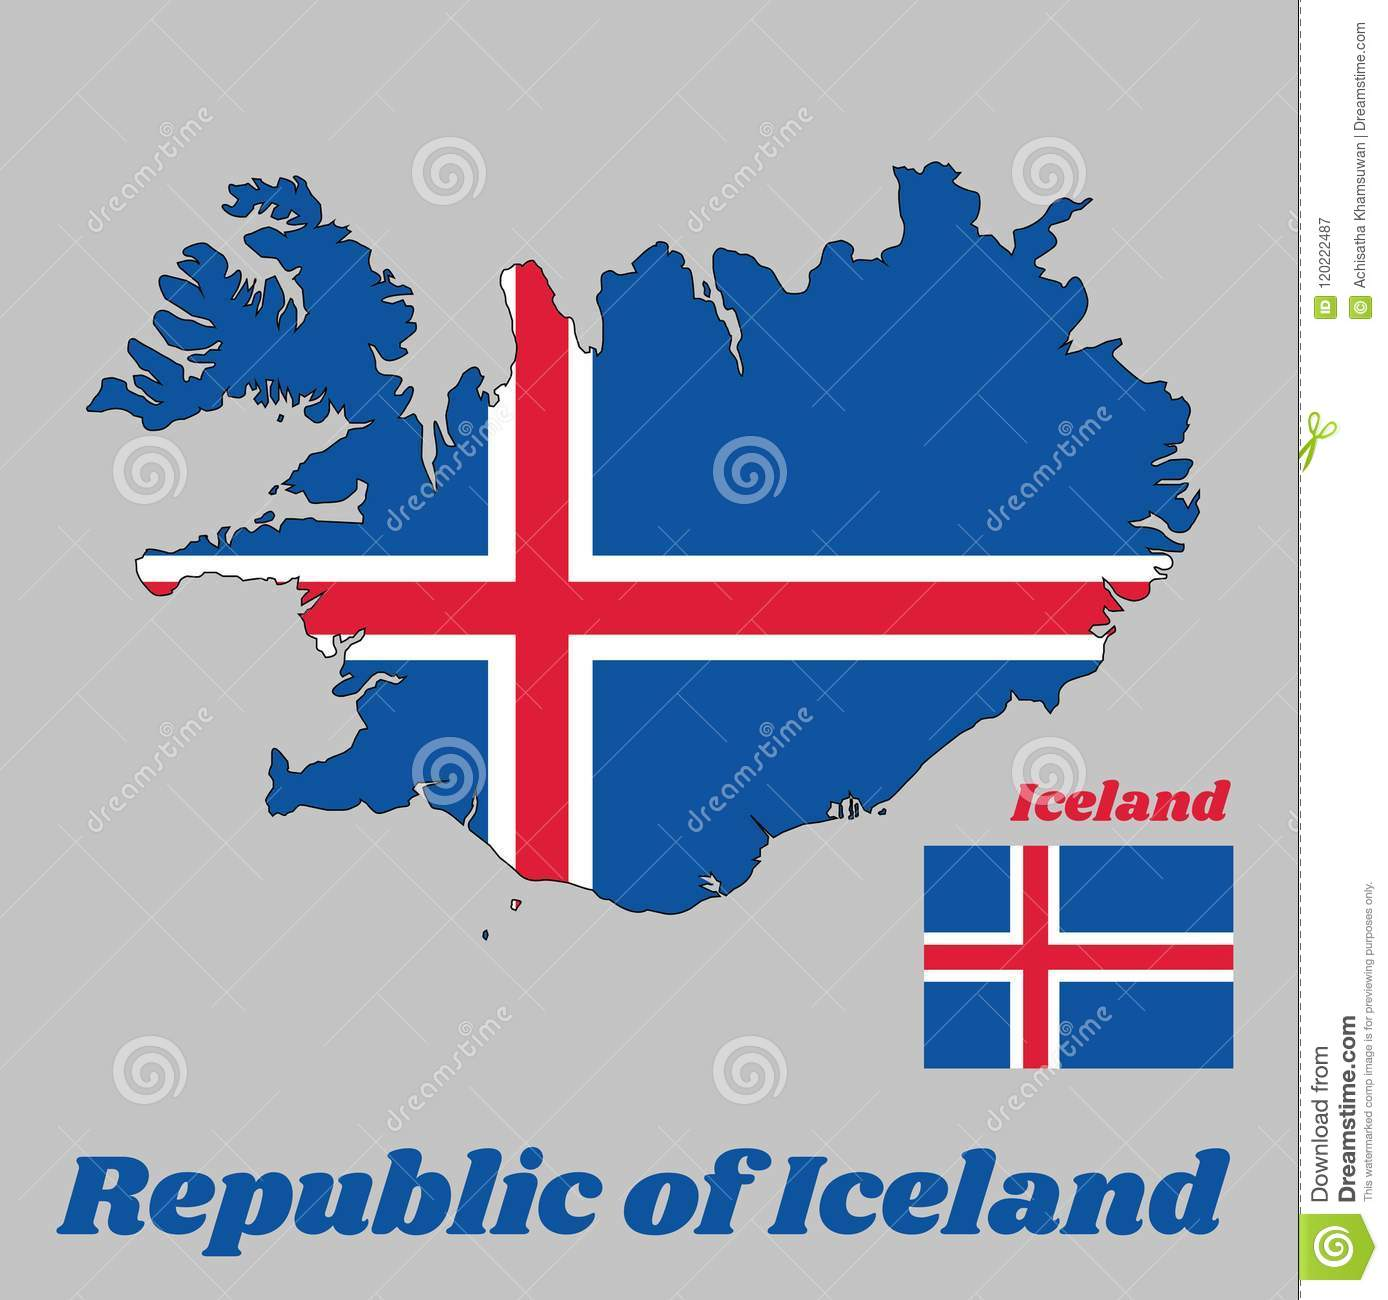 Map Outline And Flag Of Iceland, It Is Blue As The Sky With A Snow on burma map outline, south pacific islands map outline, norfolk island map outline, poland map outline, german states map outline, cape town south africa map outline, benin map outline, slovakia map outline, greenland map outline, cyprus map outline, the usa map outline, gambia map outline, macau map outline, st croix map outline, mauritania map outline, bangladesh map outline, holy roman empire map outline, far east map outline, russia map outline, aruba map outline,